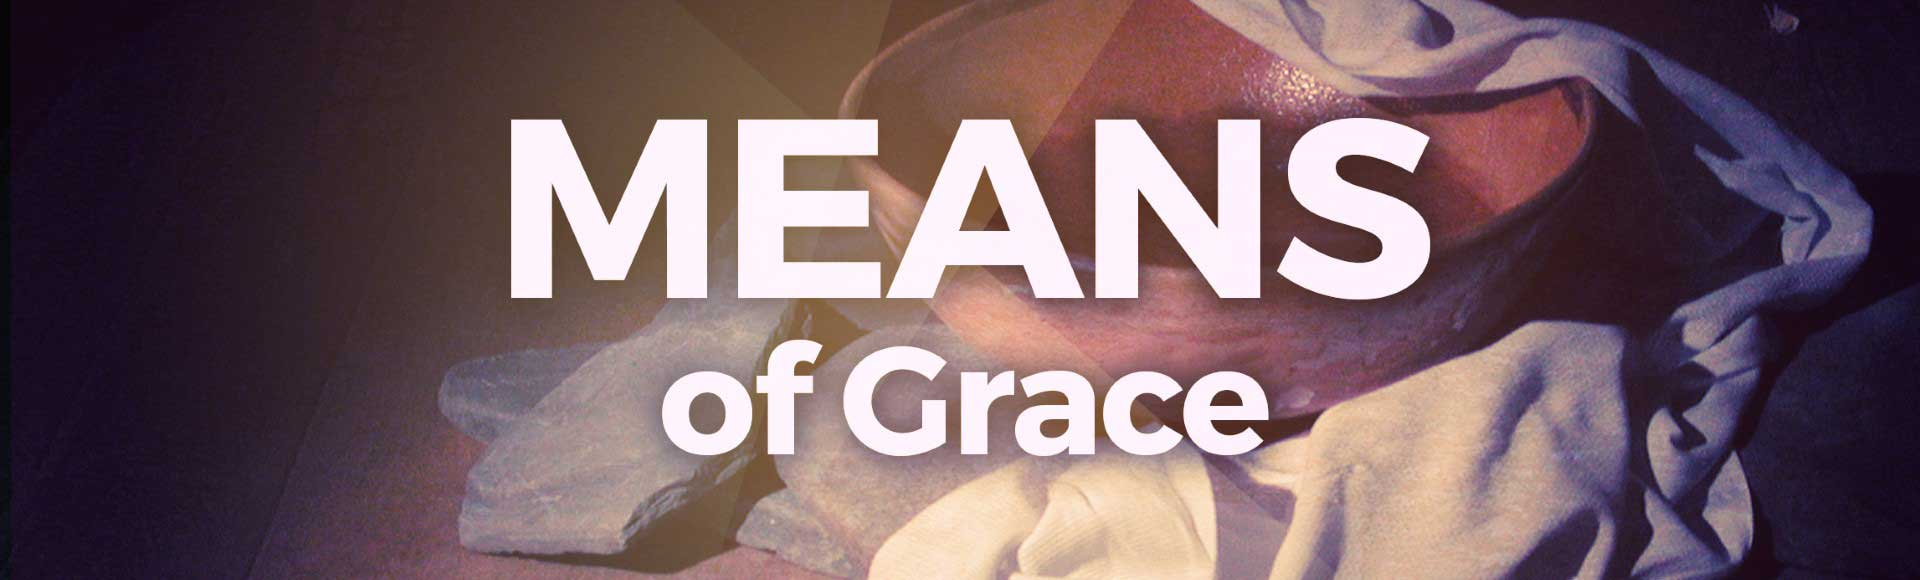 Means of Grace Glendale United Methodist Church Nashville TN